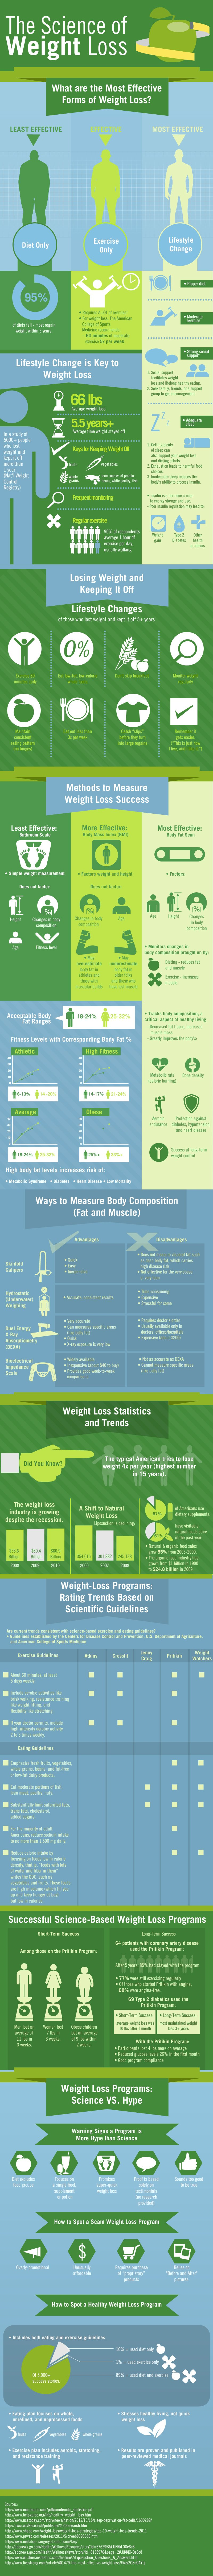 The science of weight loss - infographic